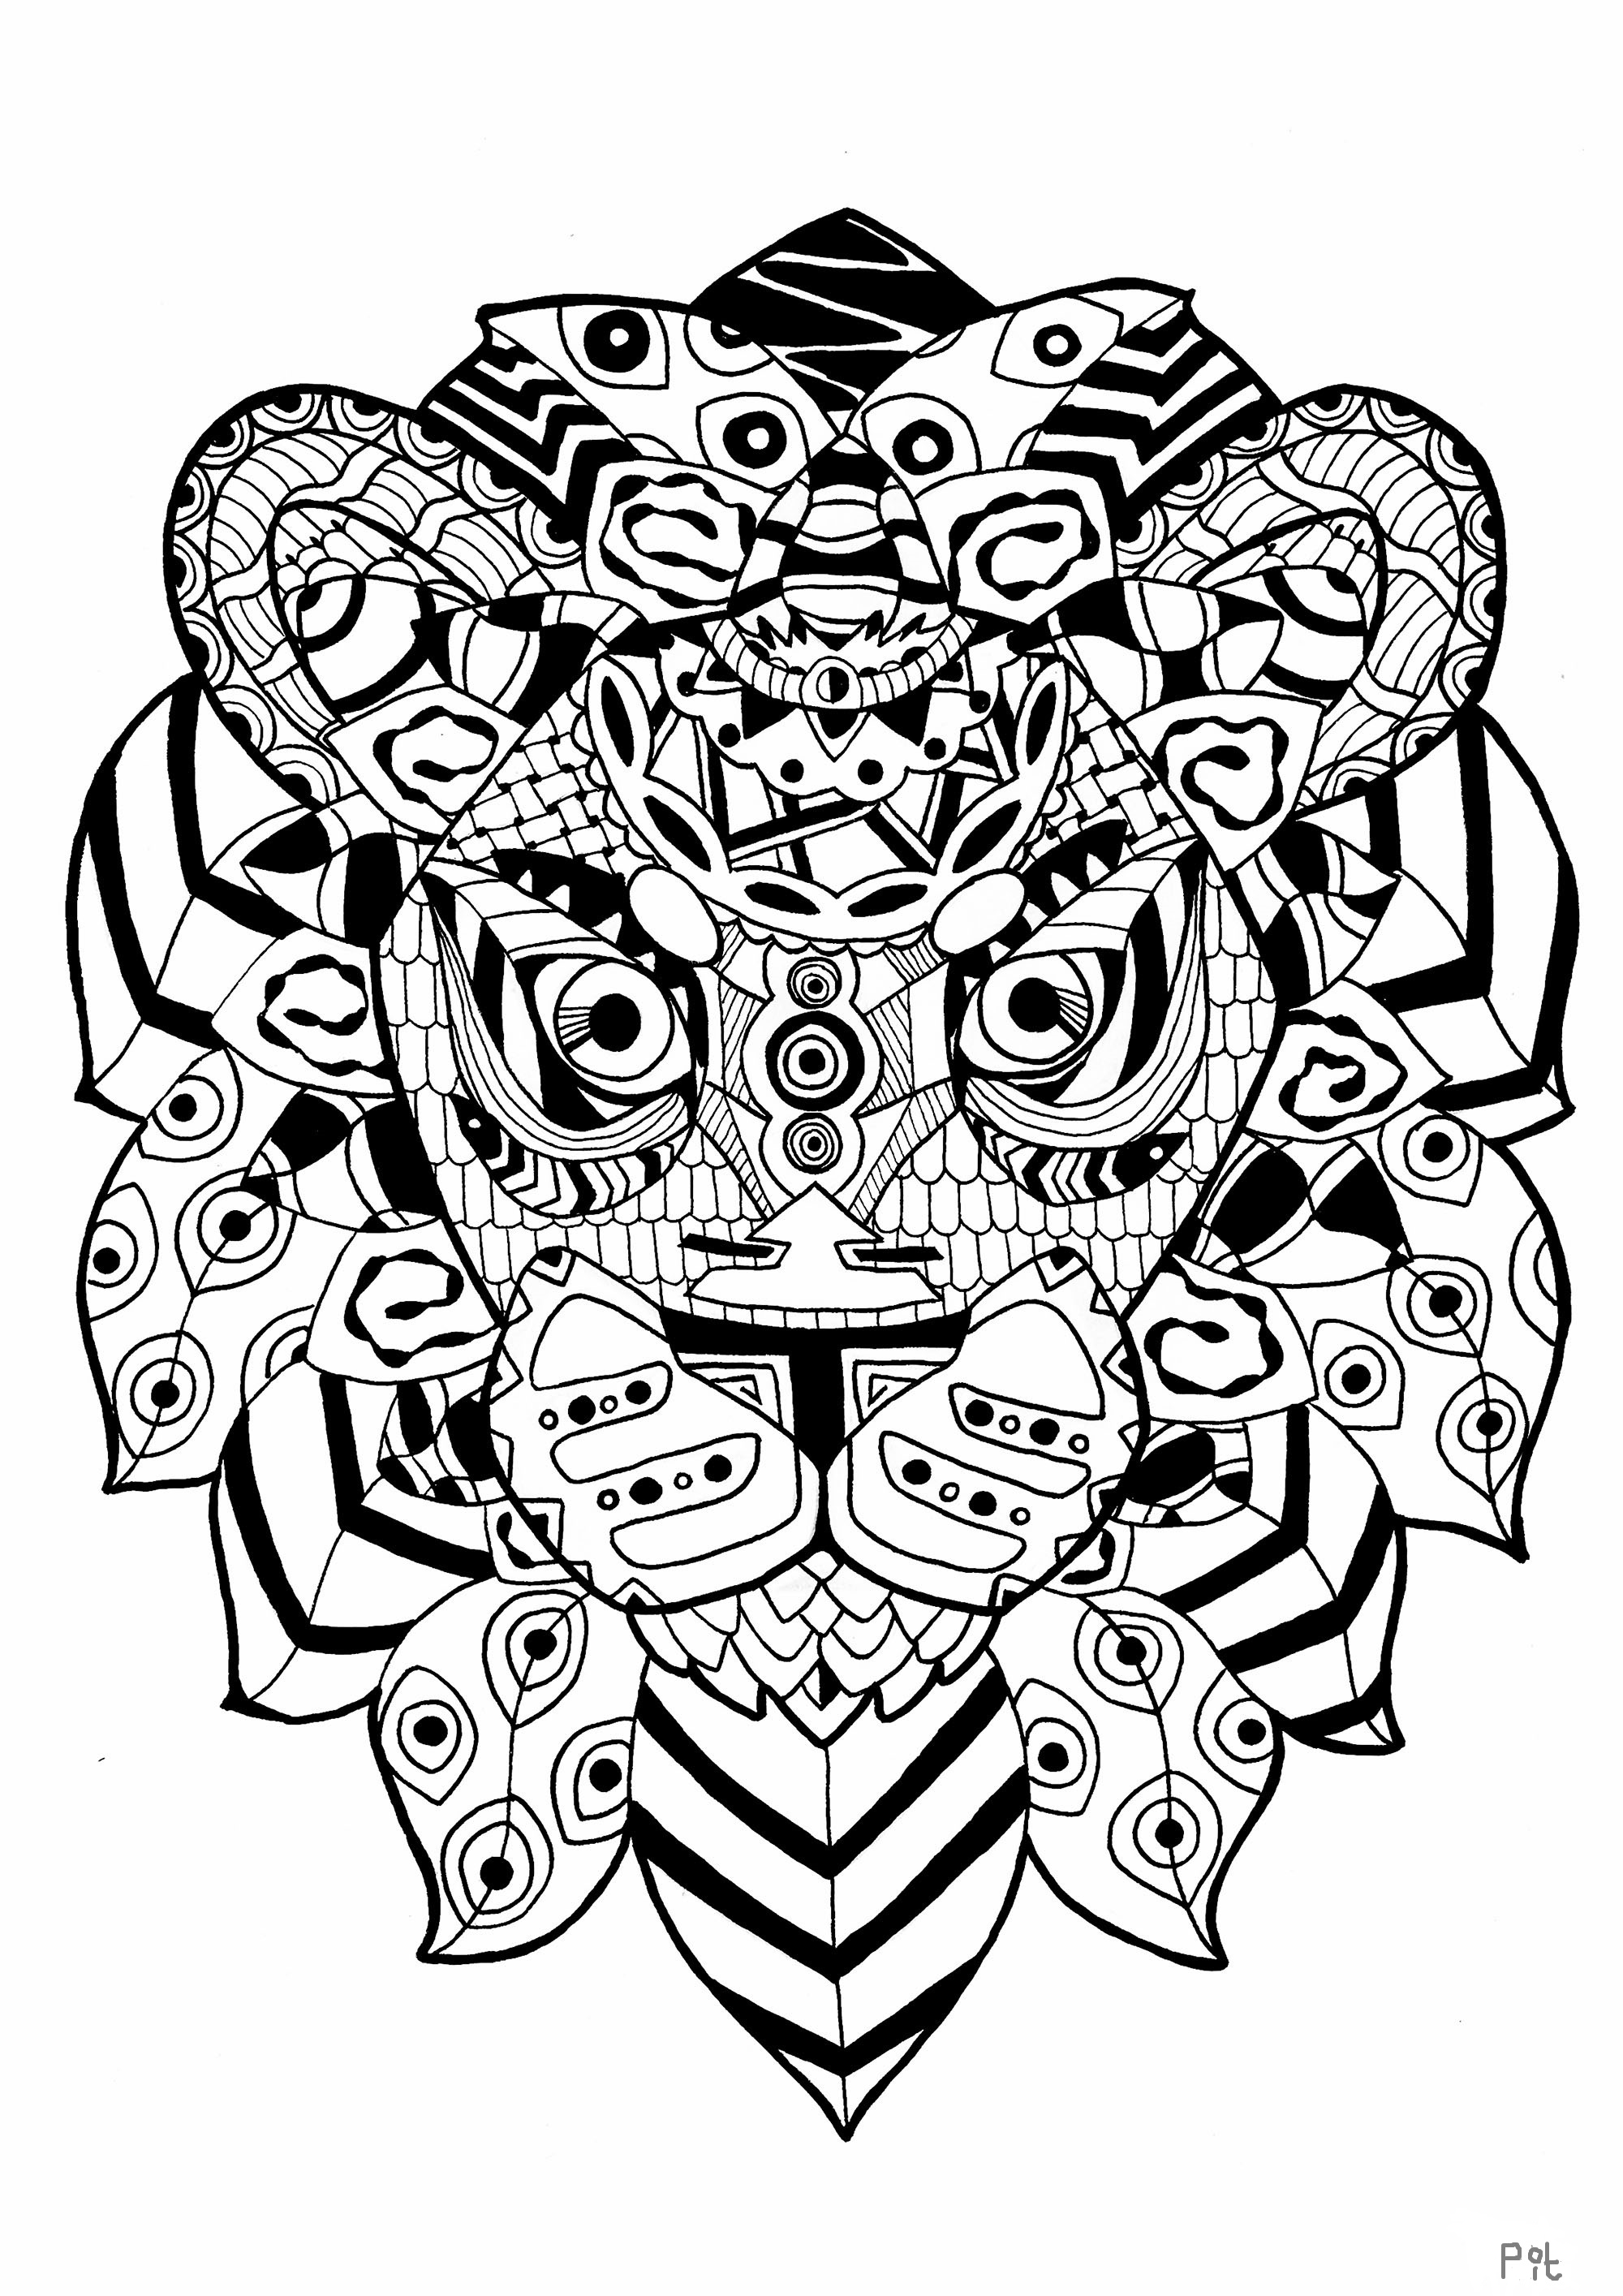 An Impressive Lion With A Zentangle Style